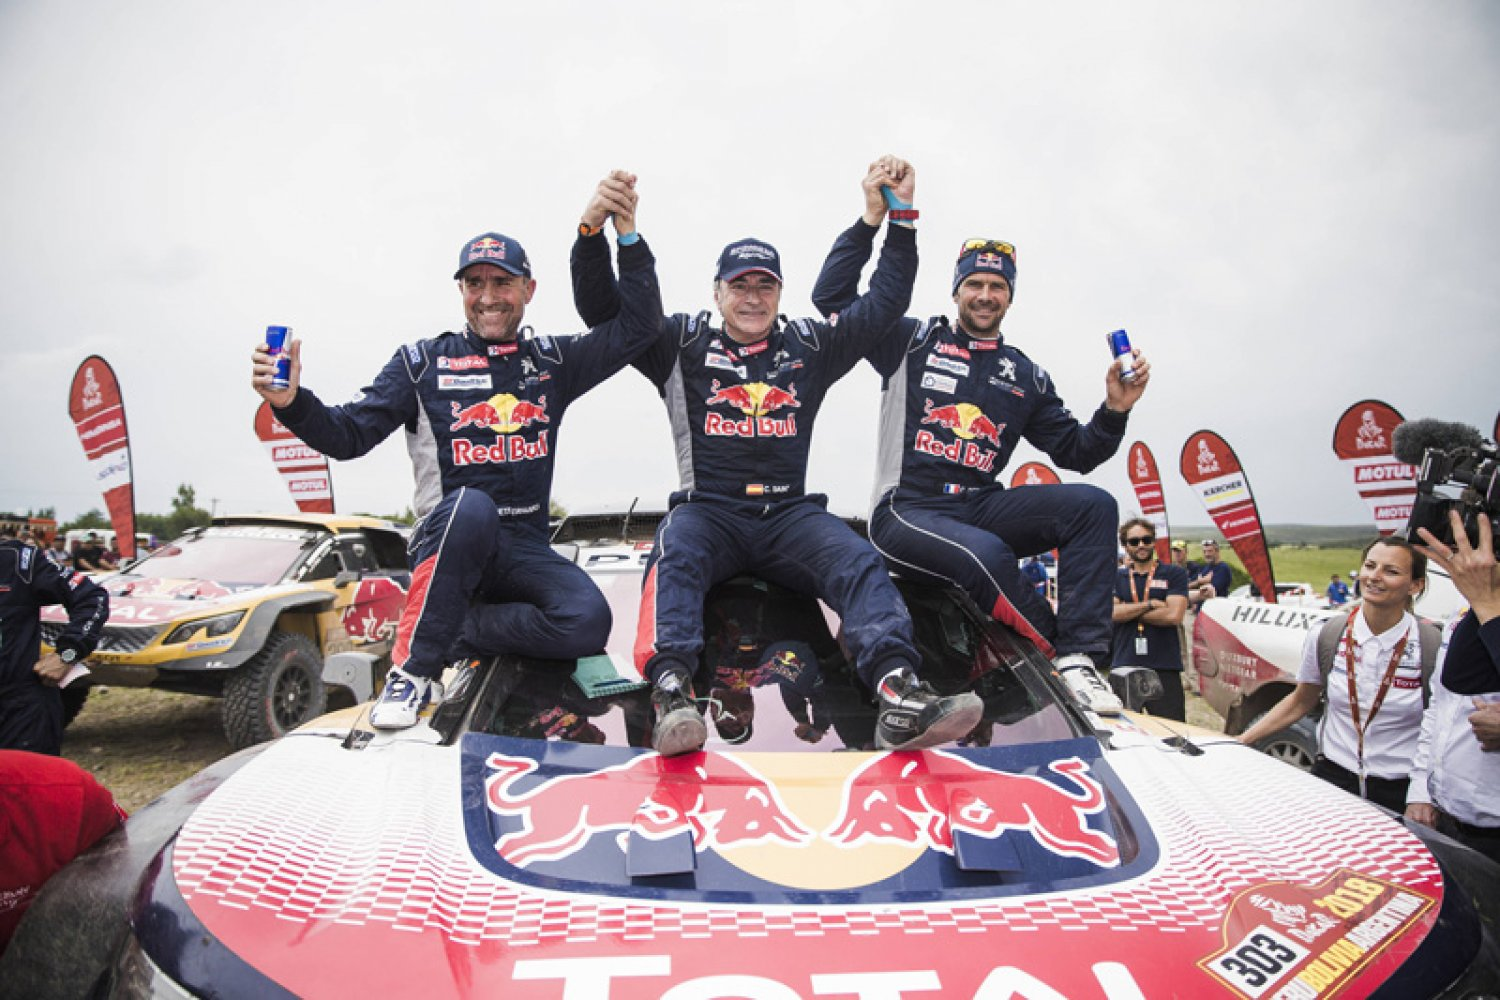 La Dream Team Peugeot chez X-raid